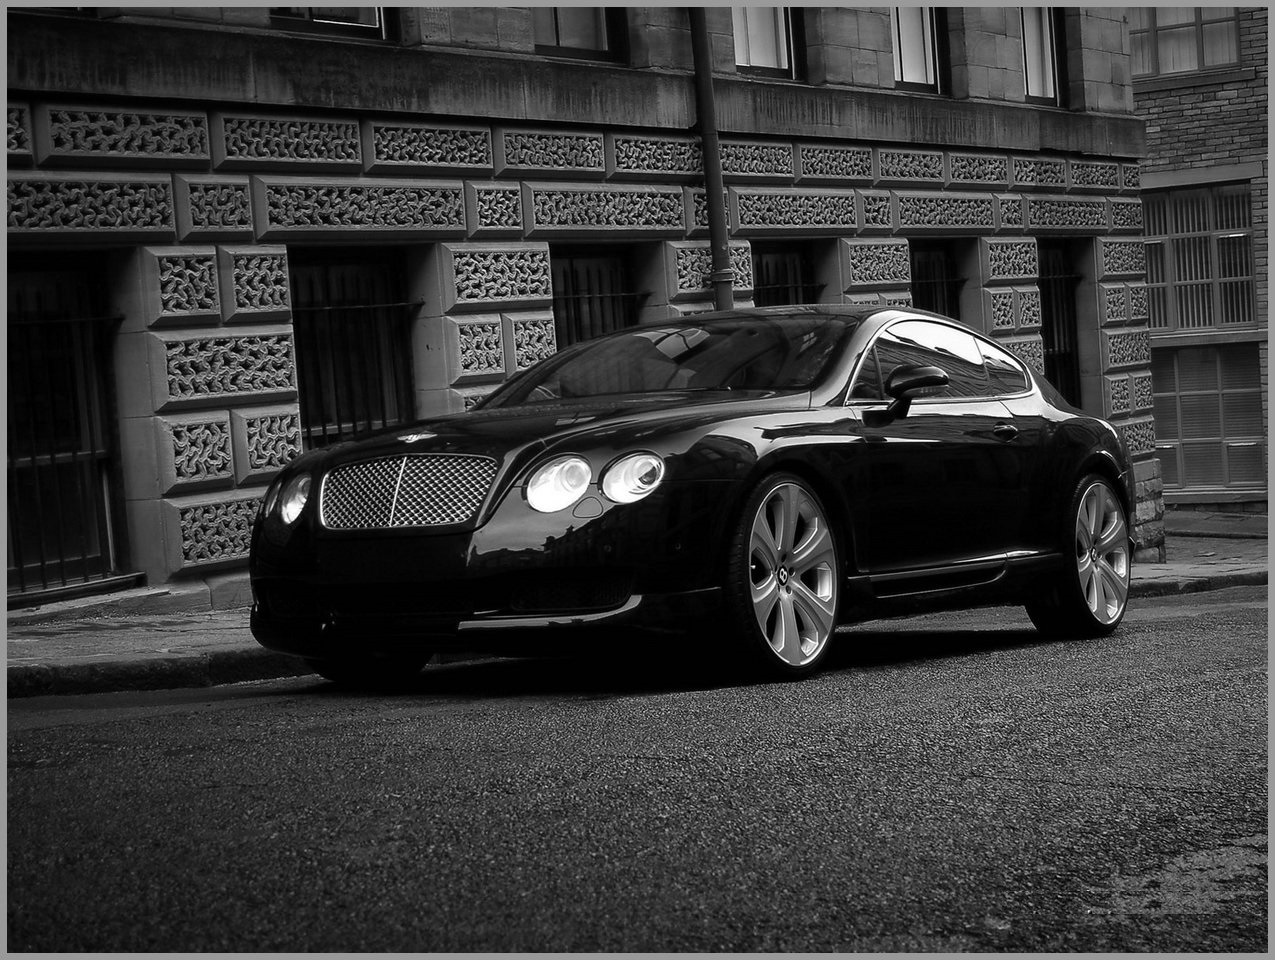 Bentley Cars HD Wallpaper & Picture